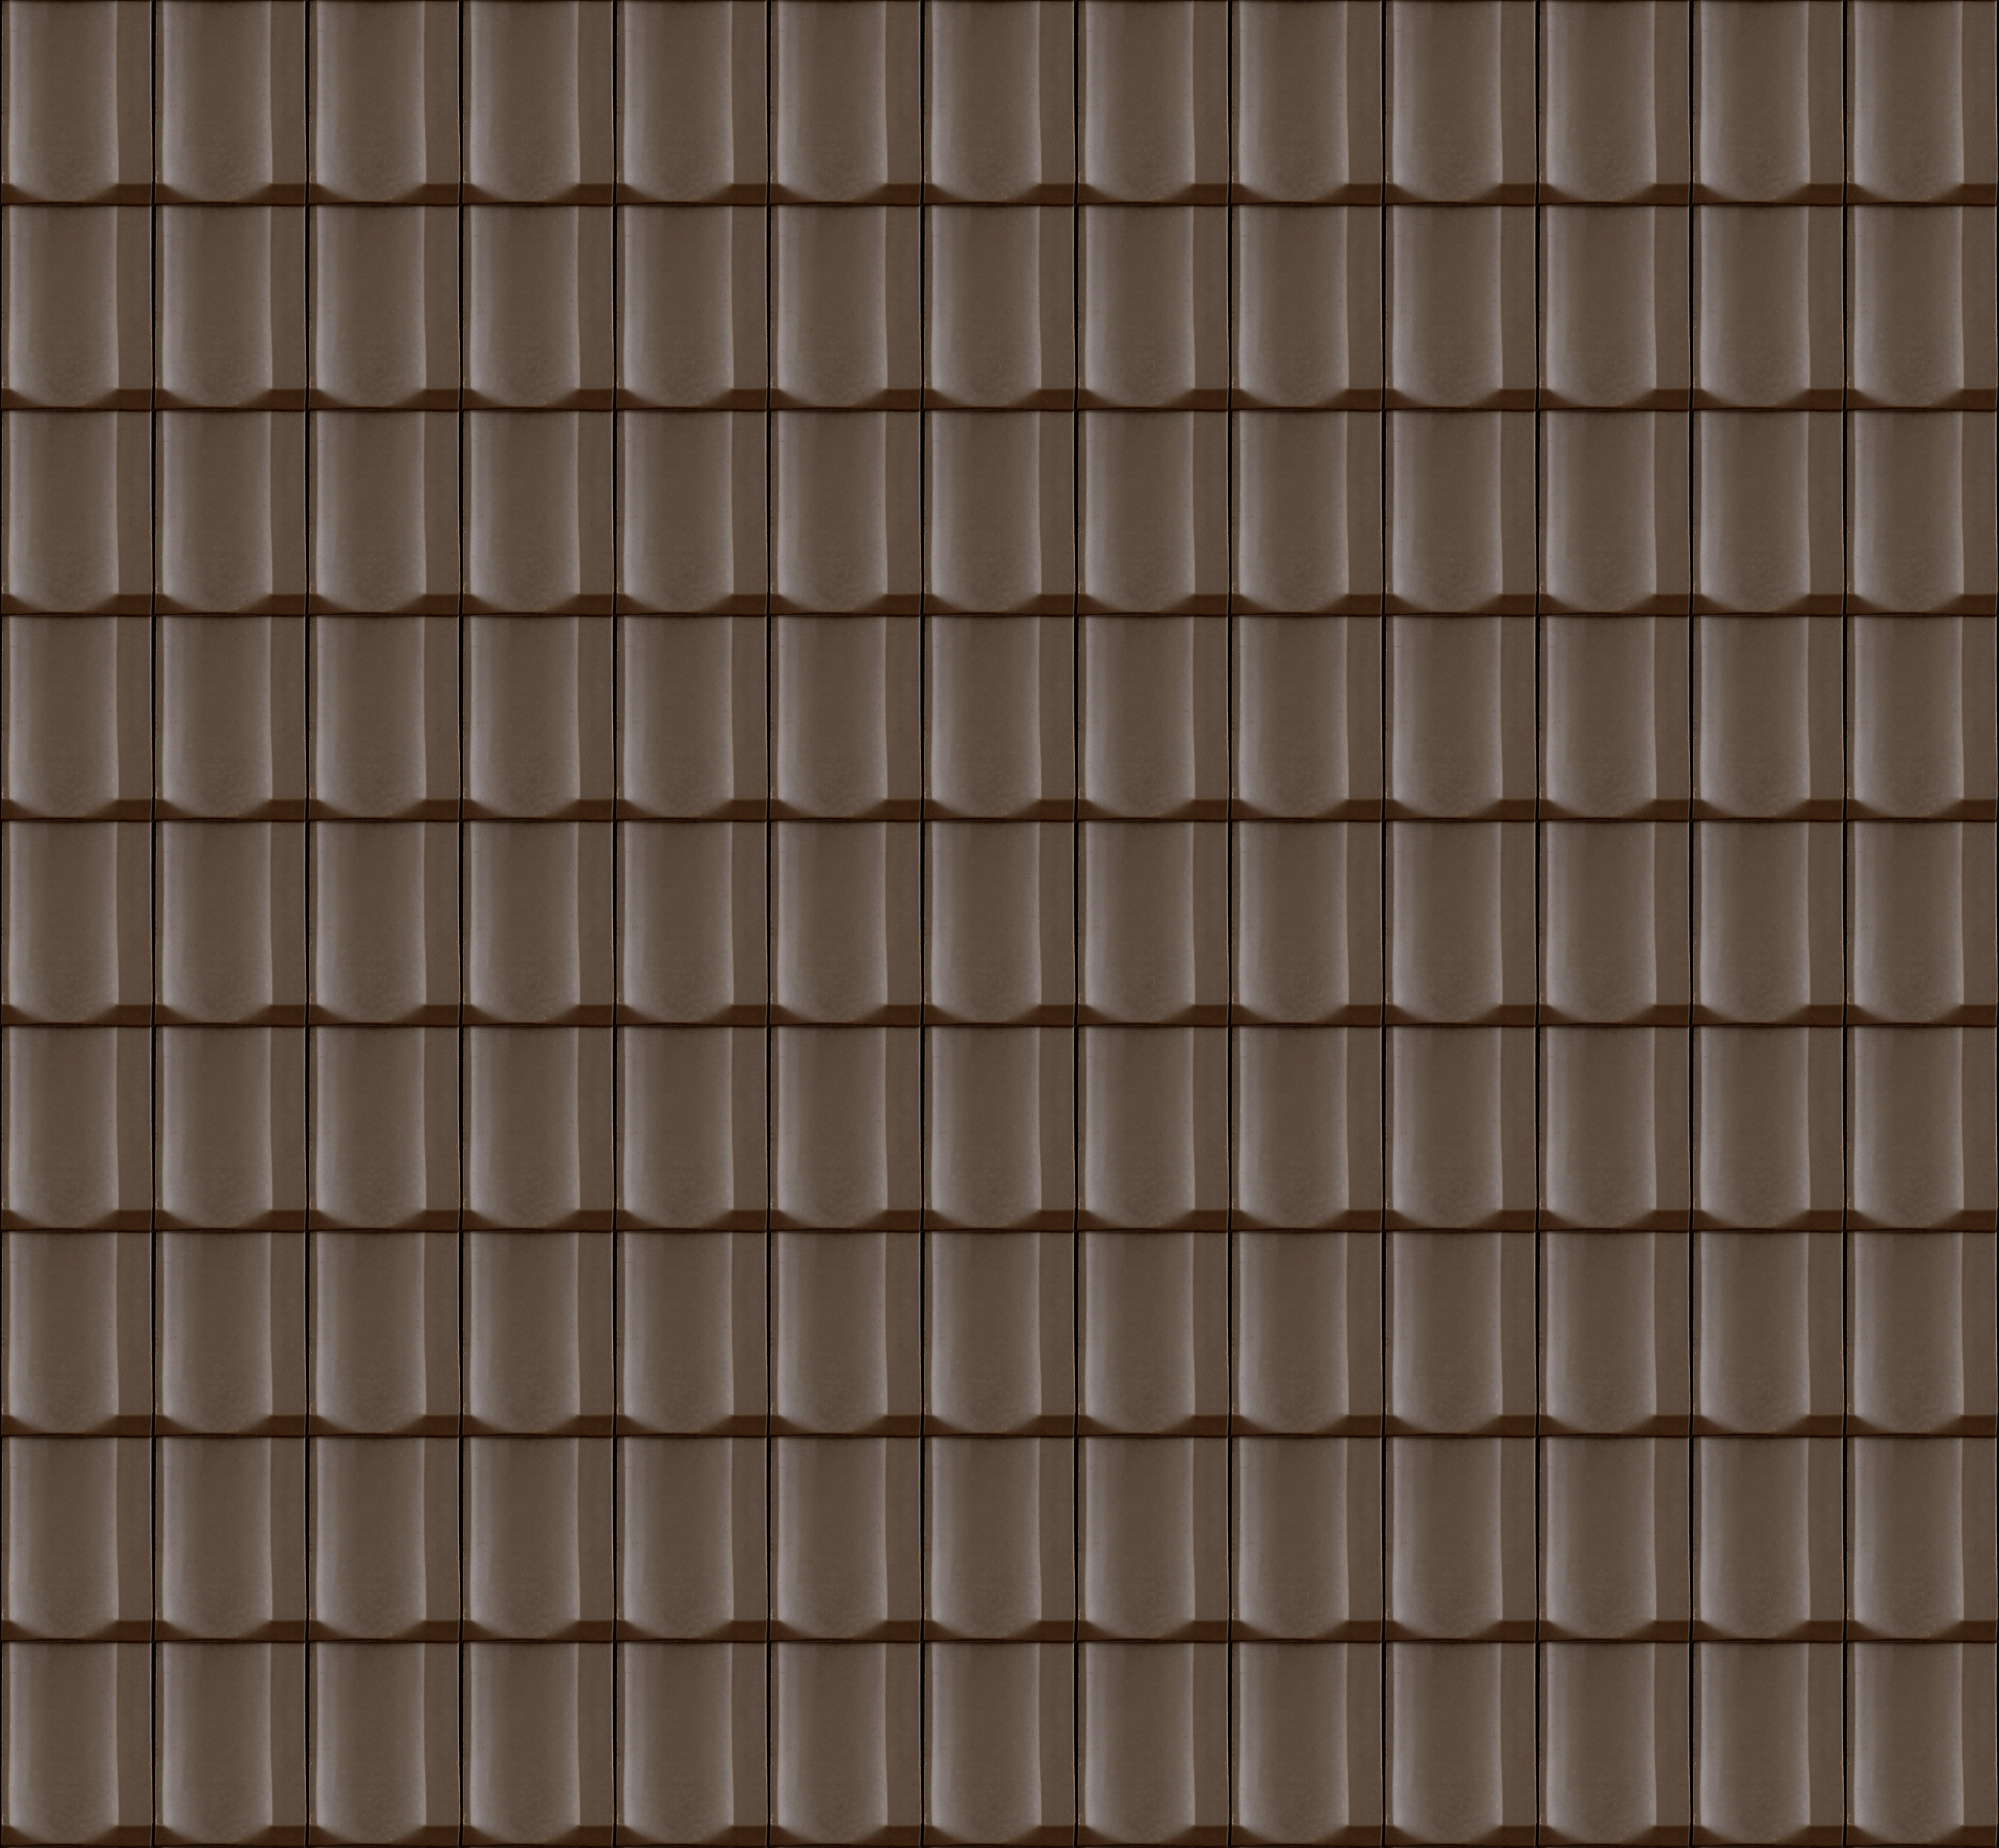 Roofing texture metal roofing texture with trash on wave for Roof tile patterns